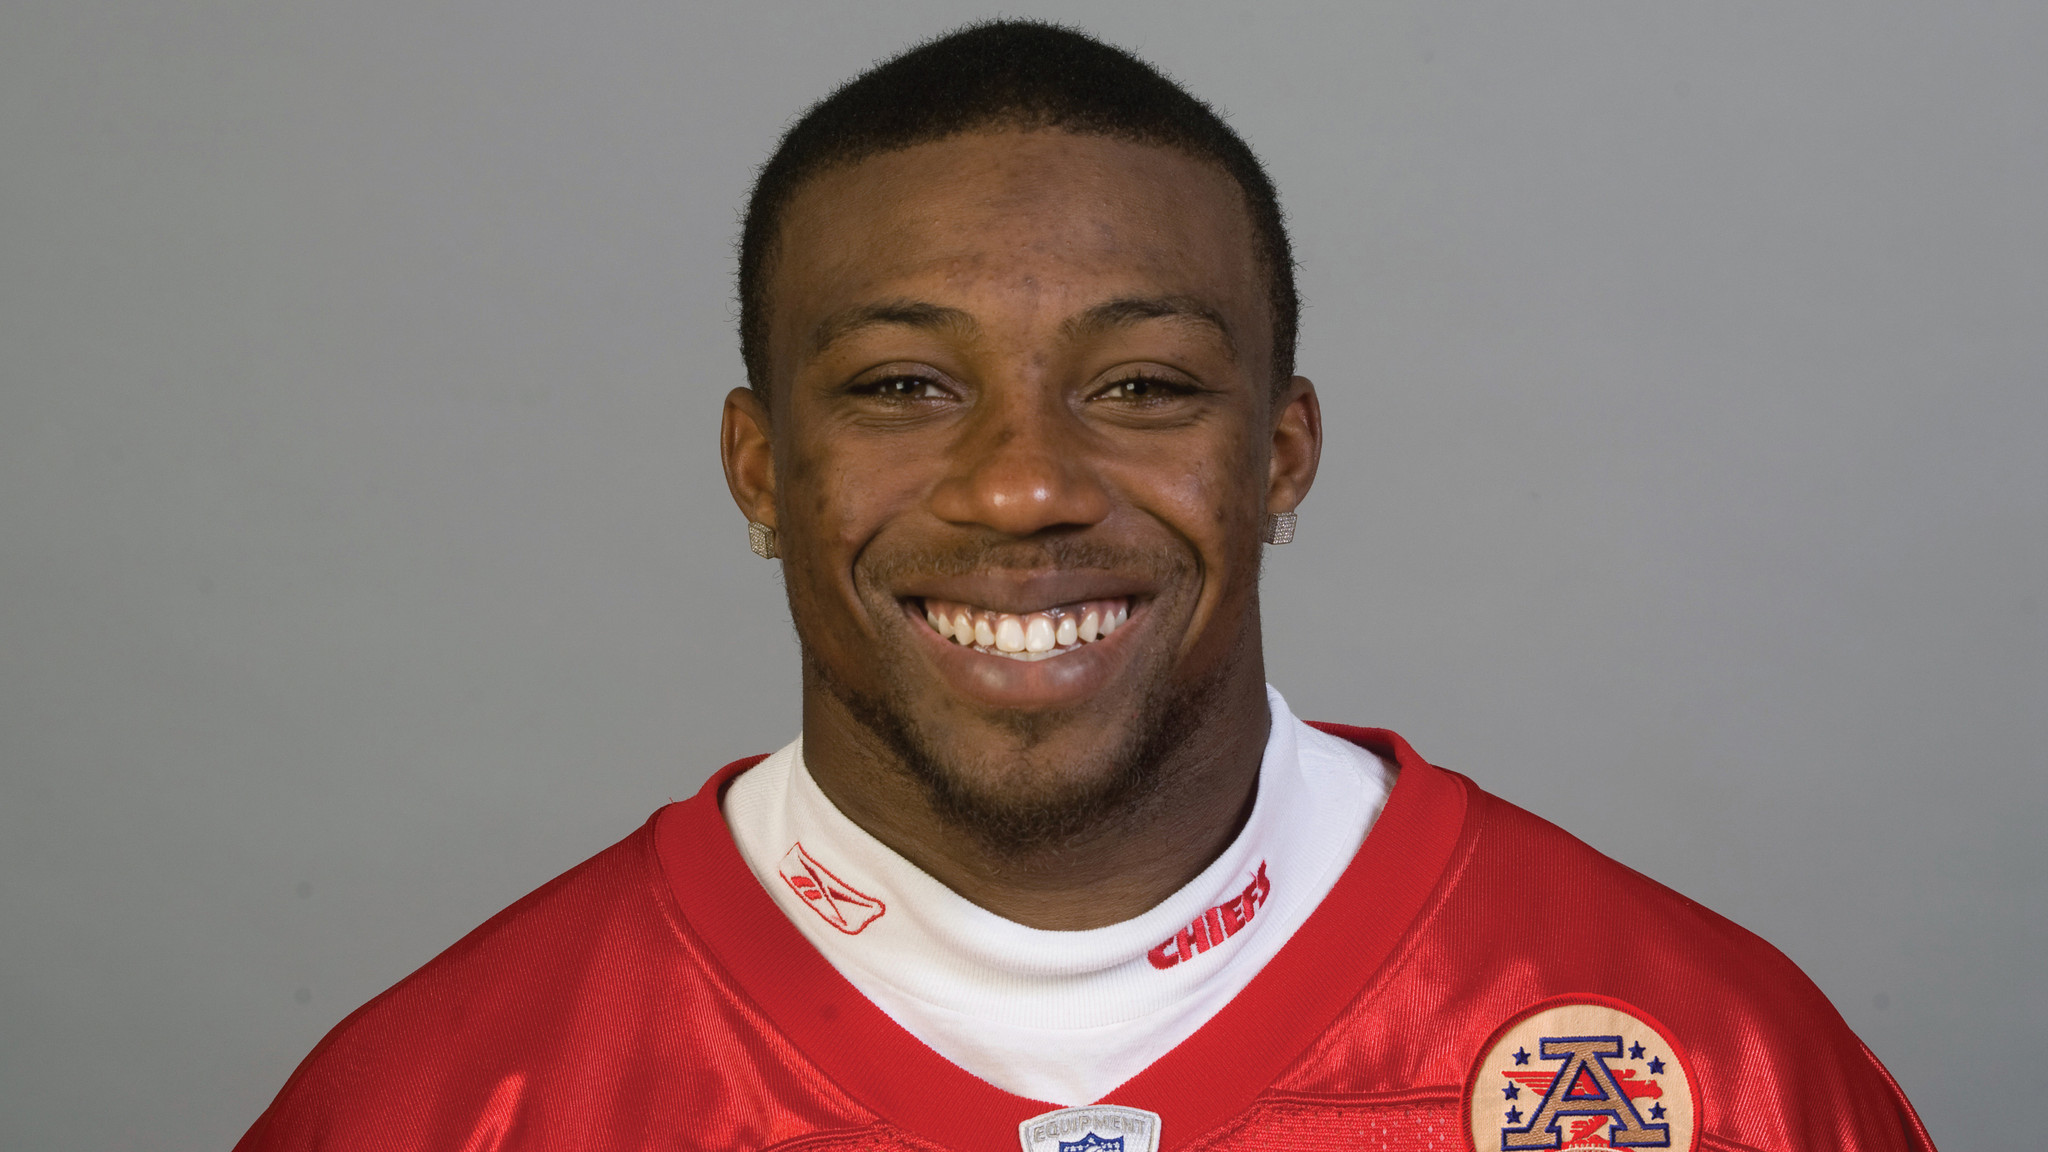 Kansas City s Eric Berry has mass on chest feared to have